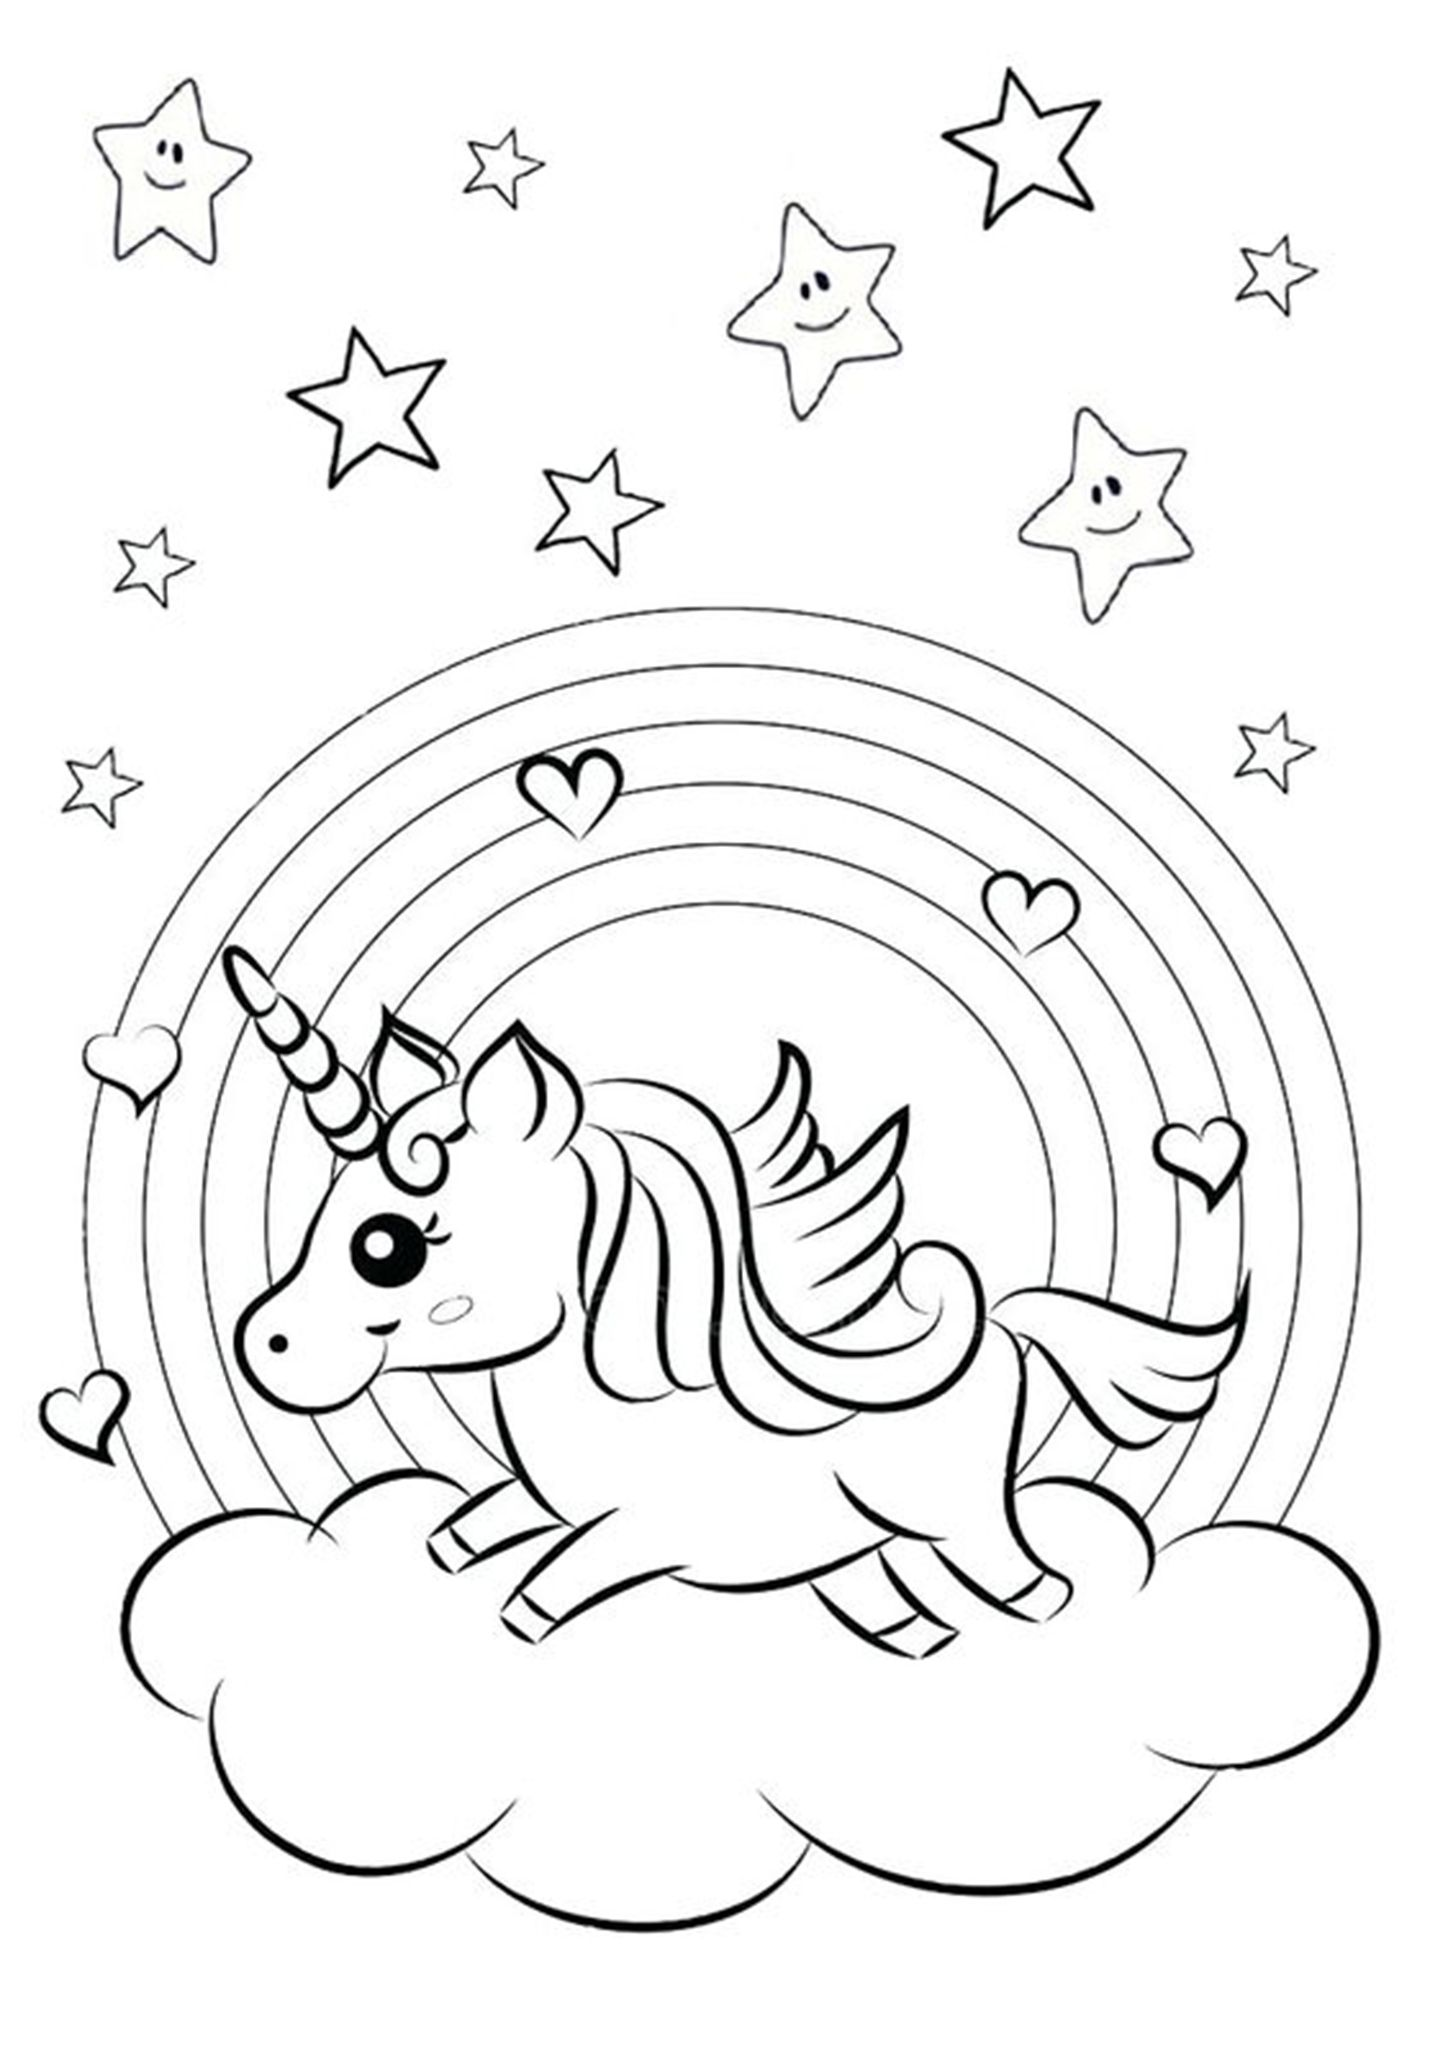 27+ Cute coloring pages unicorn rainbow ideas